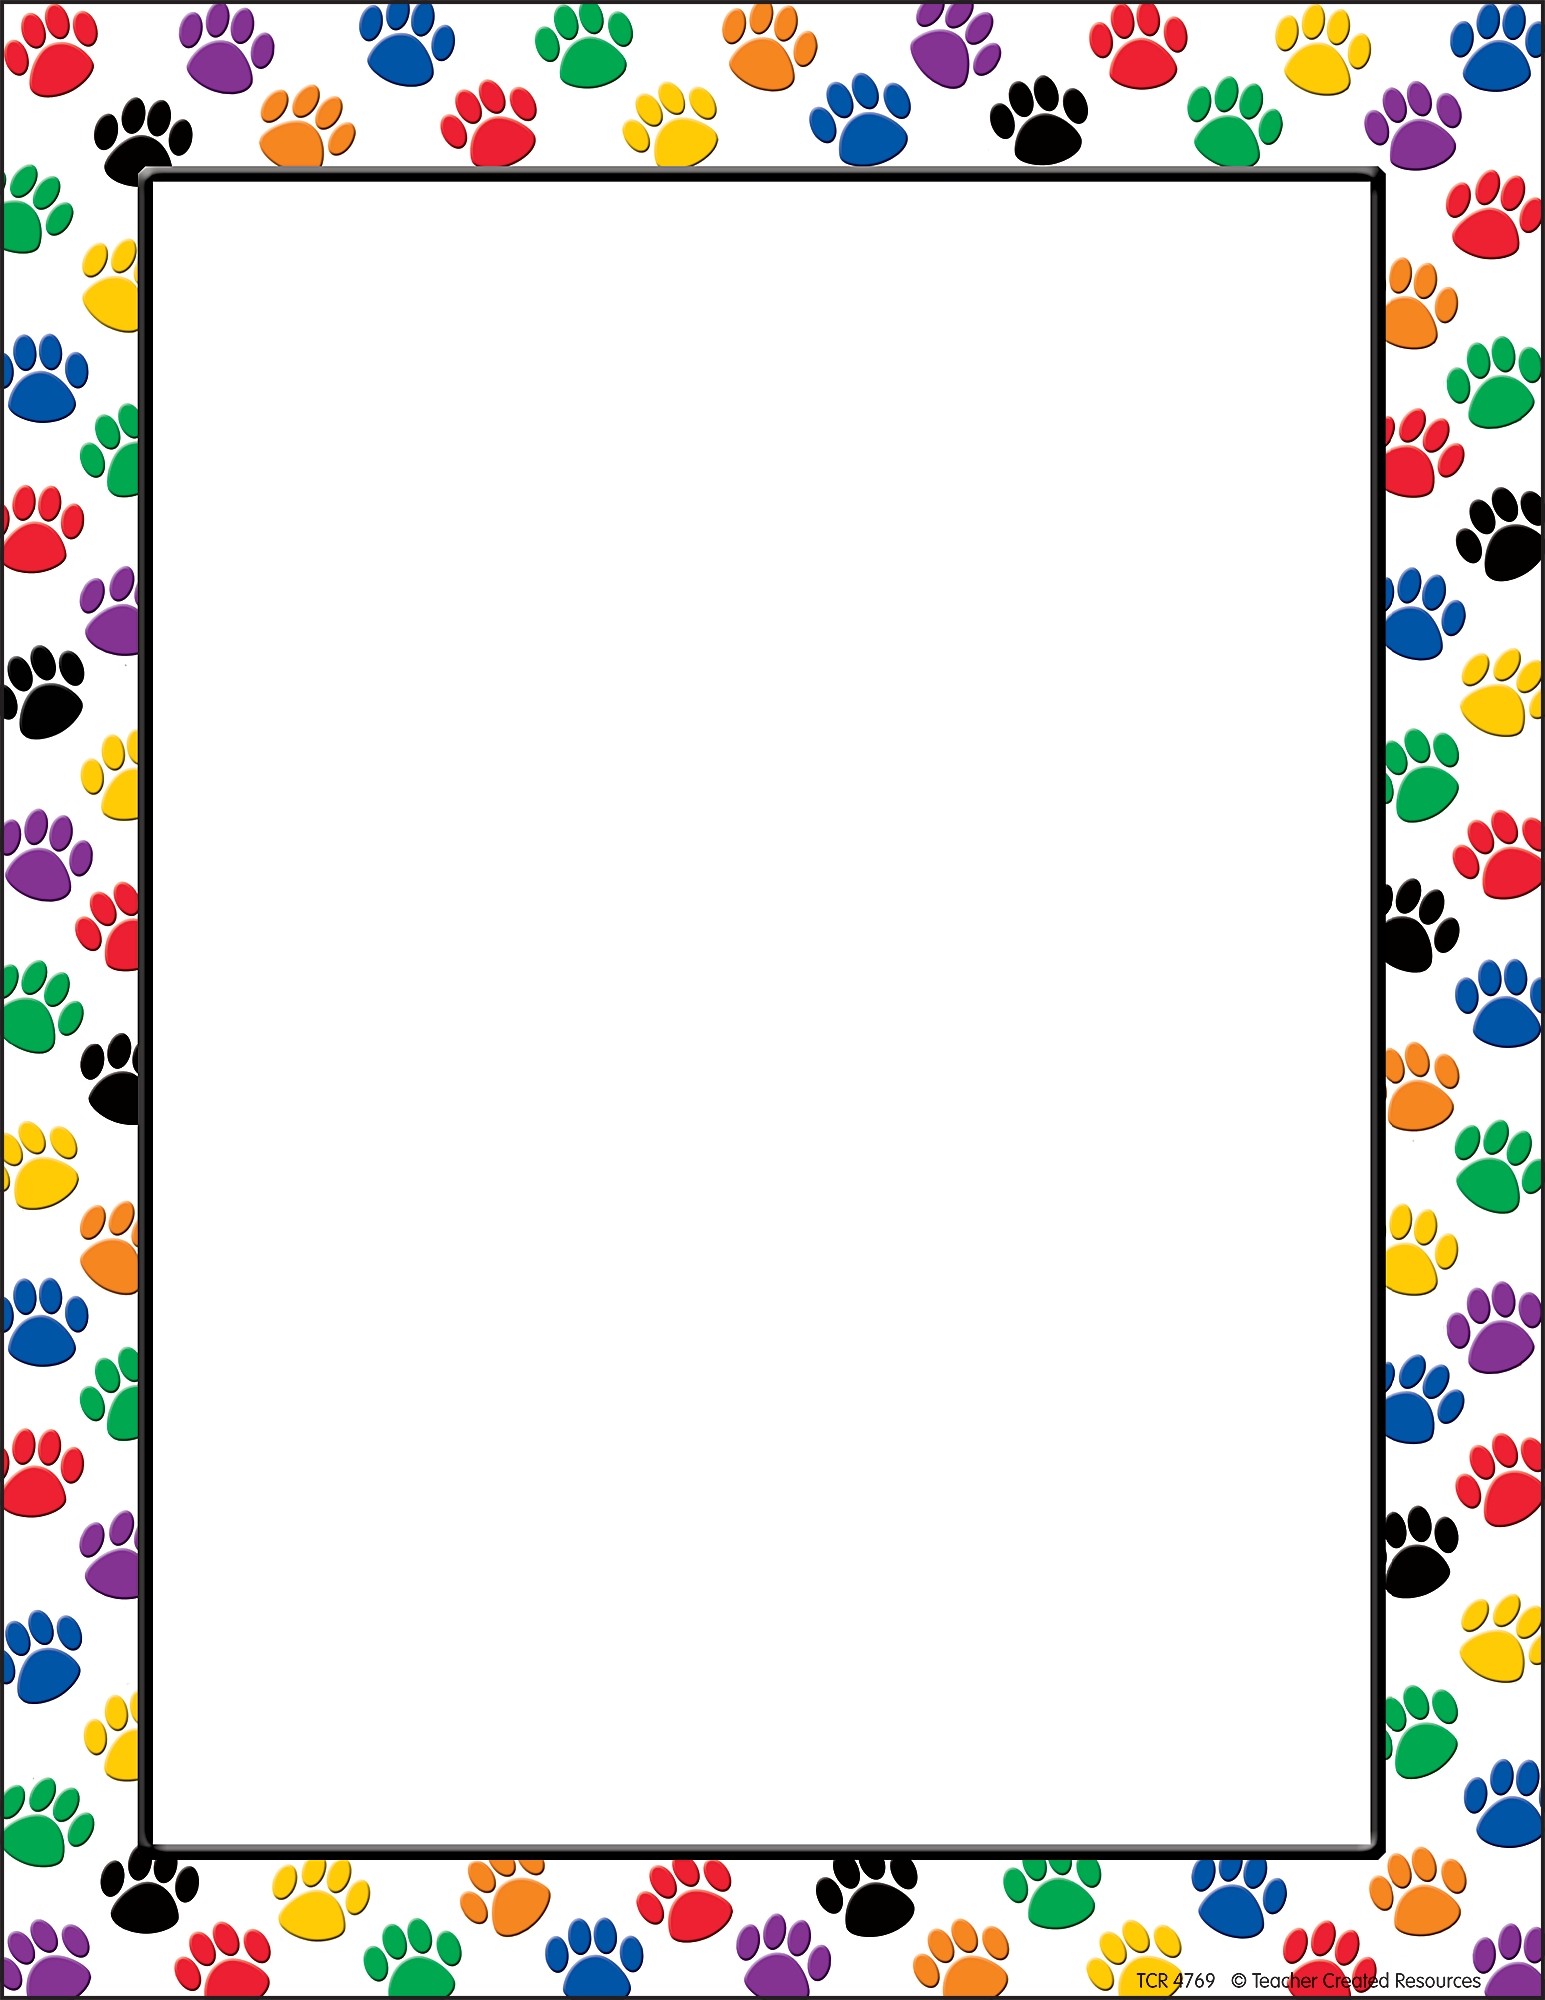 It is a graphic of Crazy Paw Patrol Borders